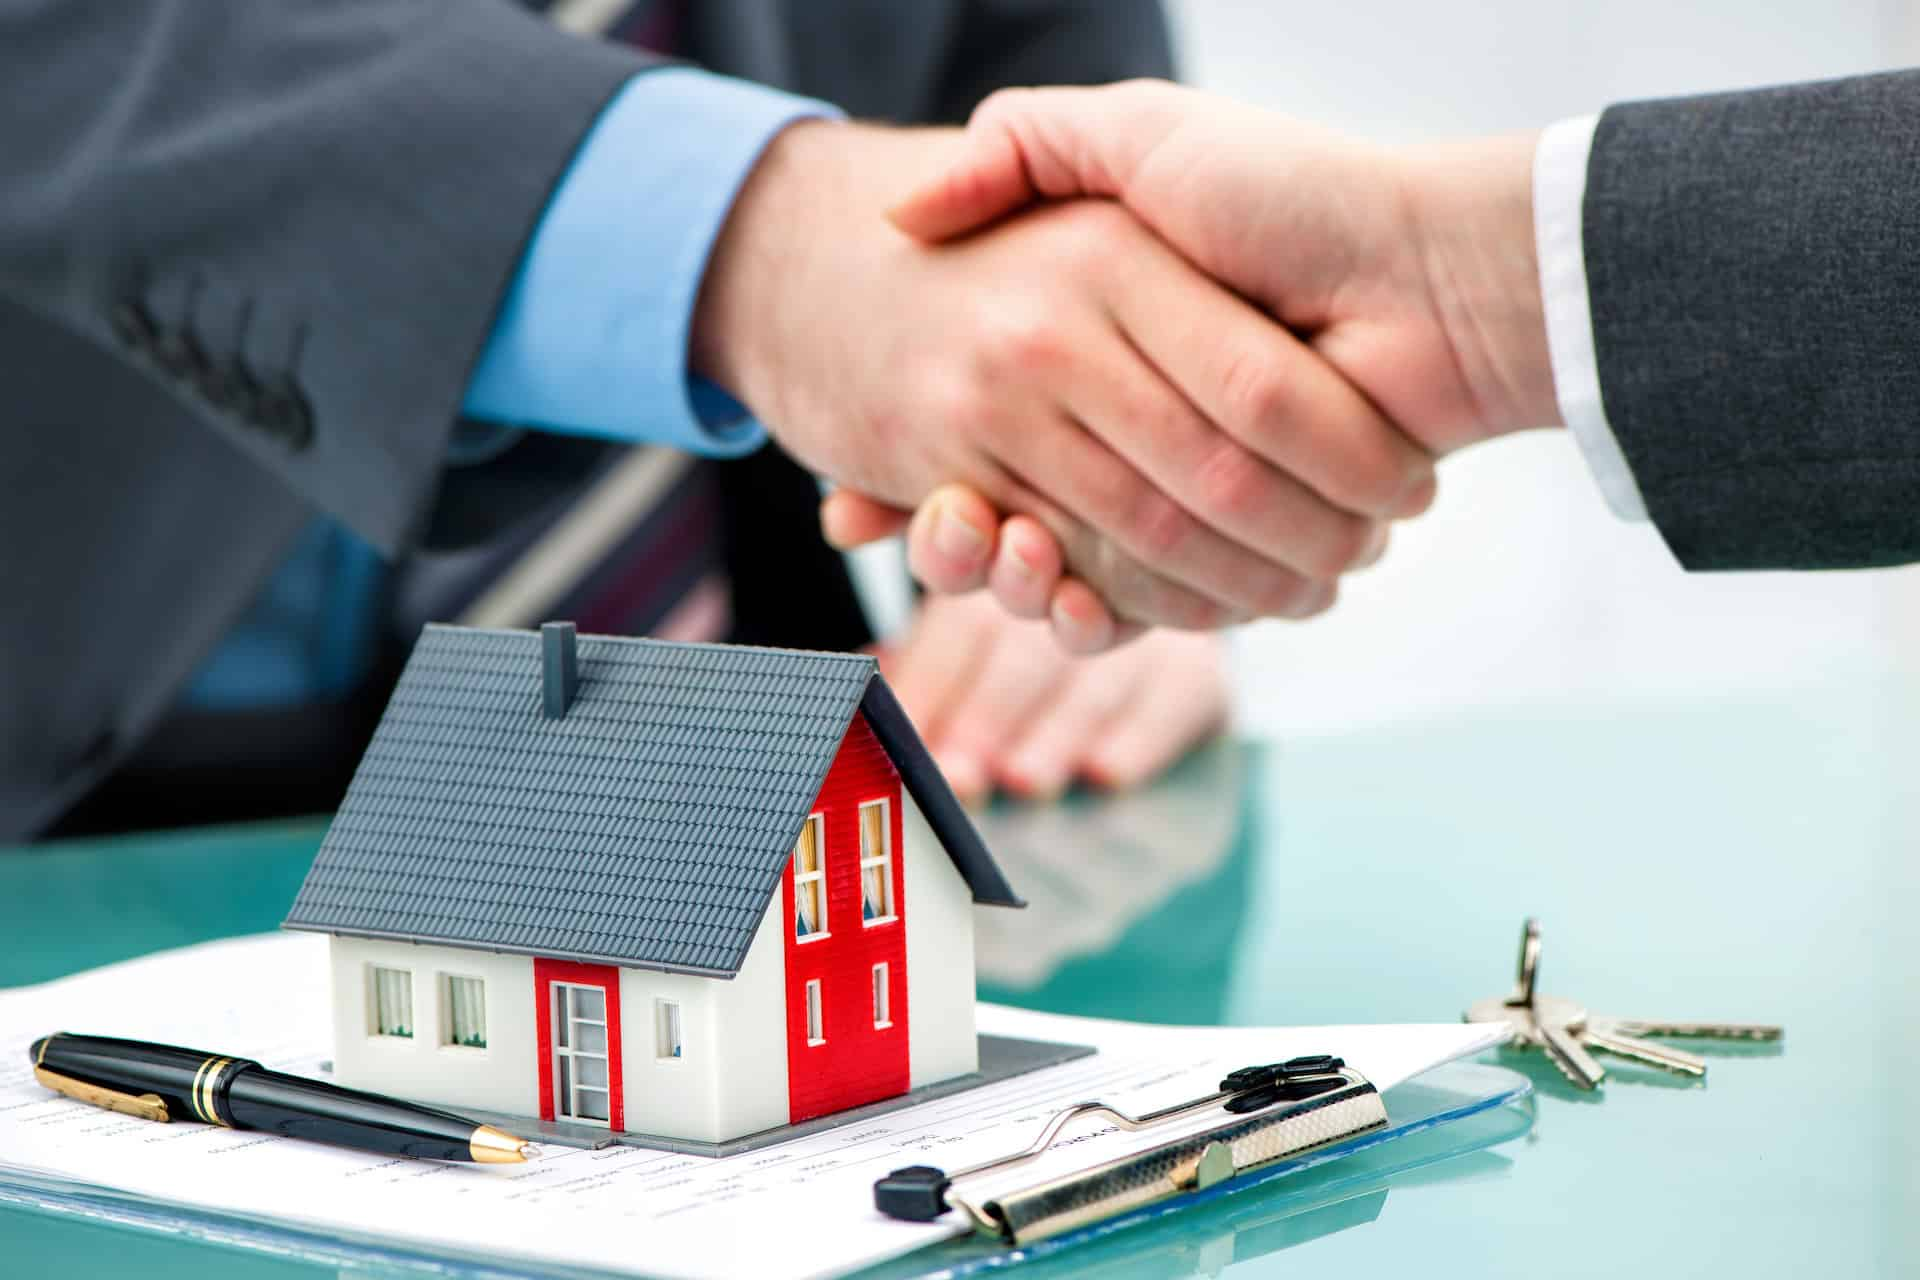 4 California Real Estate Laws Every Investor Should Know